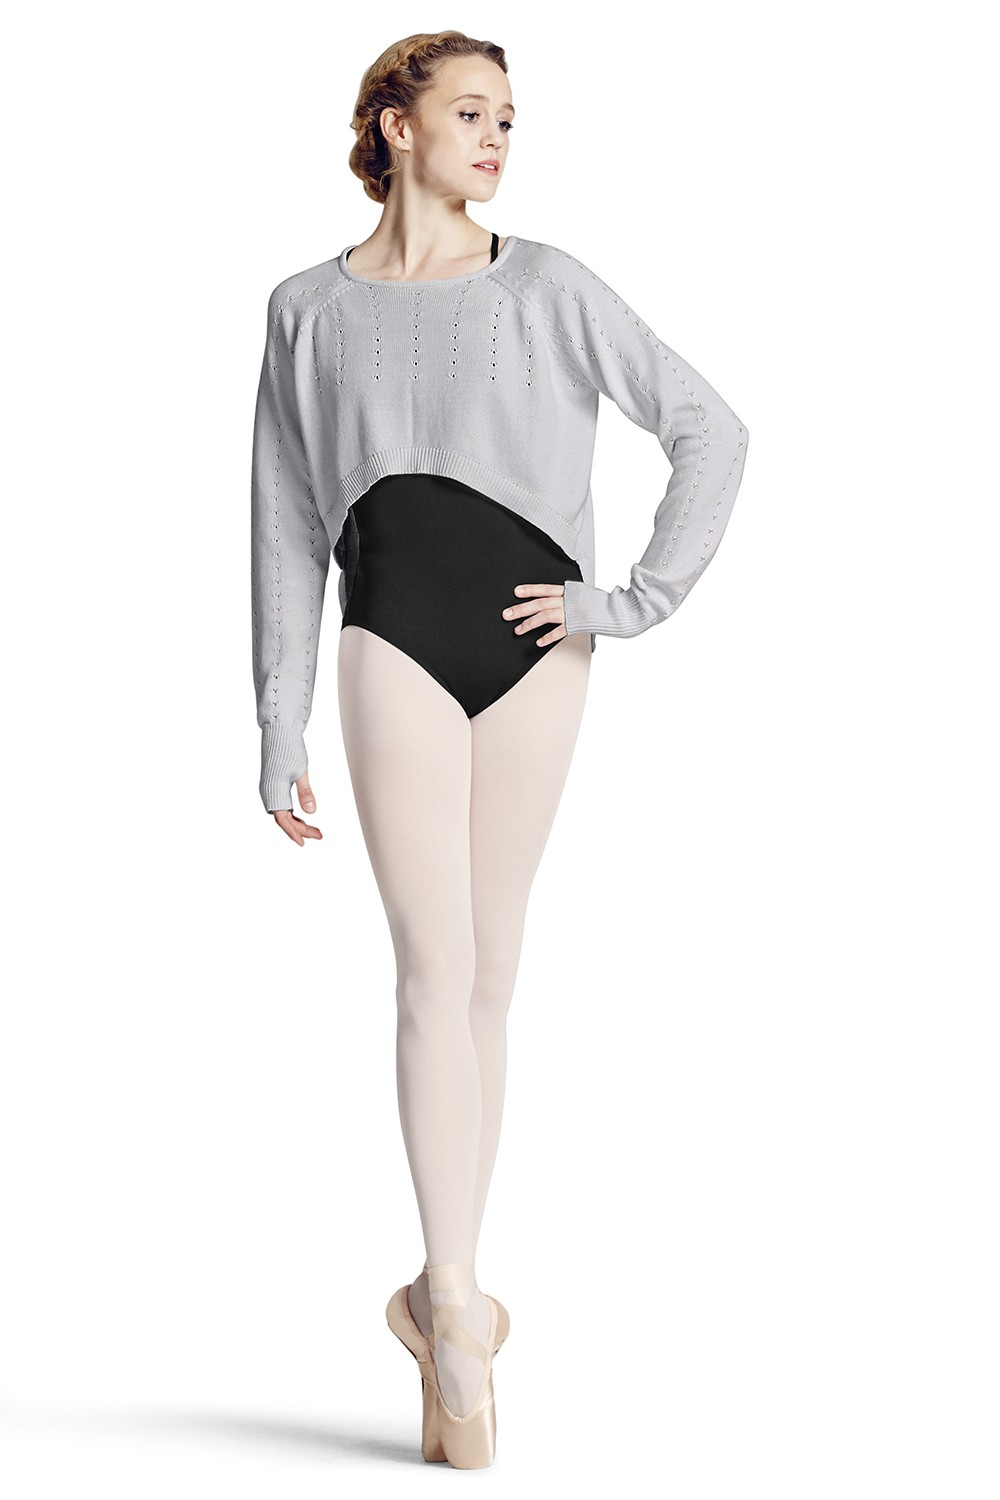 Knit Hi-lo Long Sleeve Sweater Women's Dance Tops